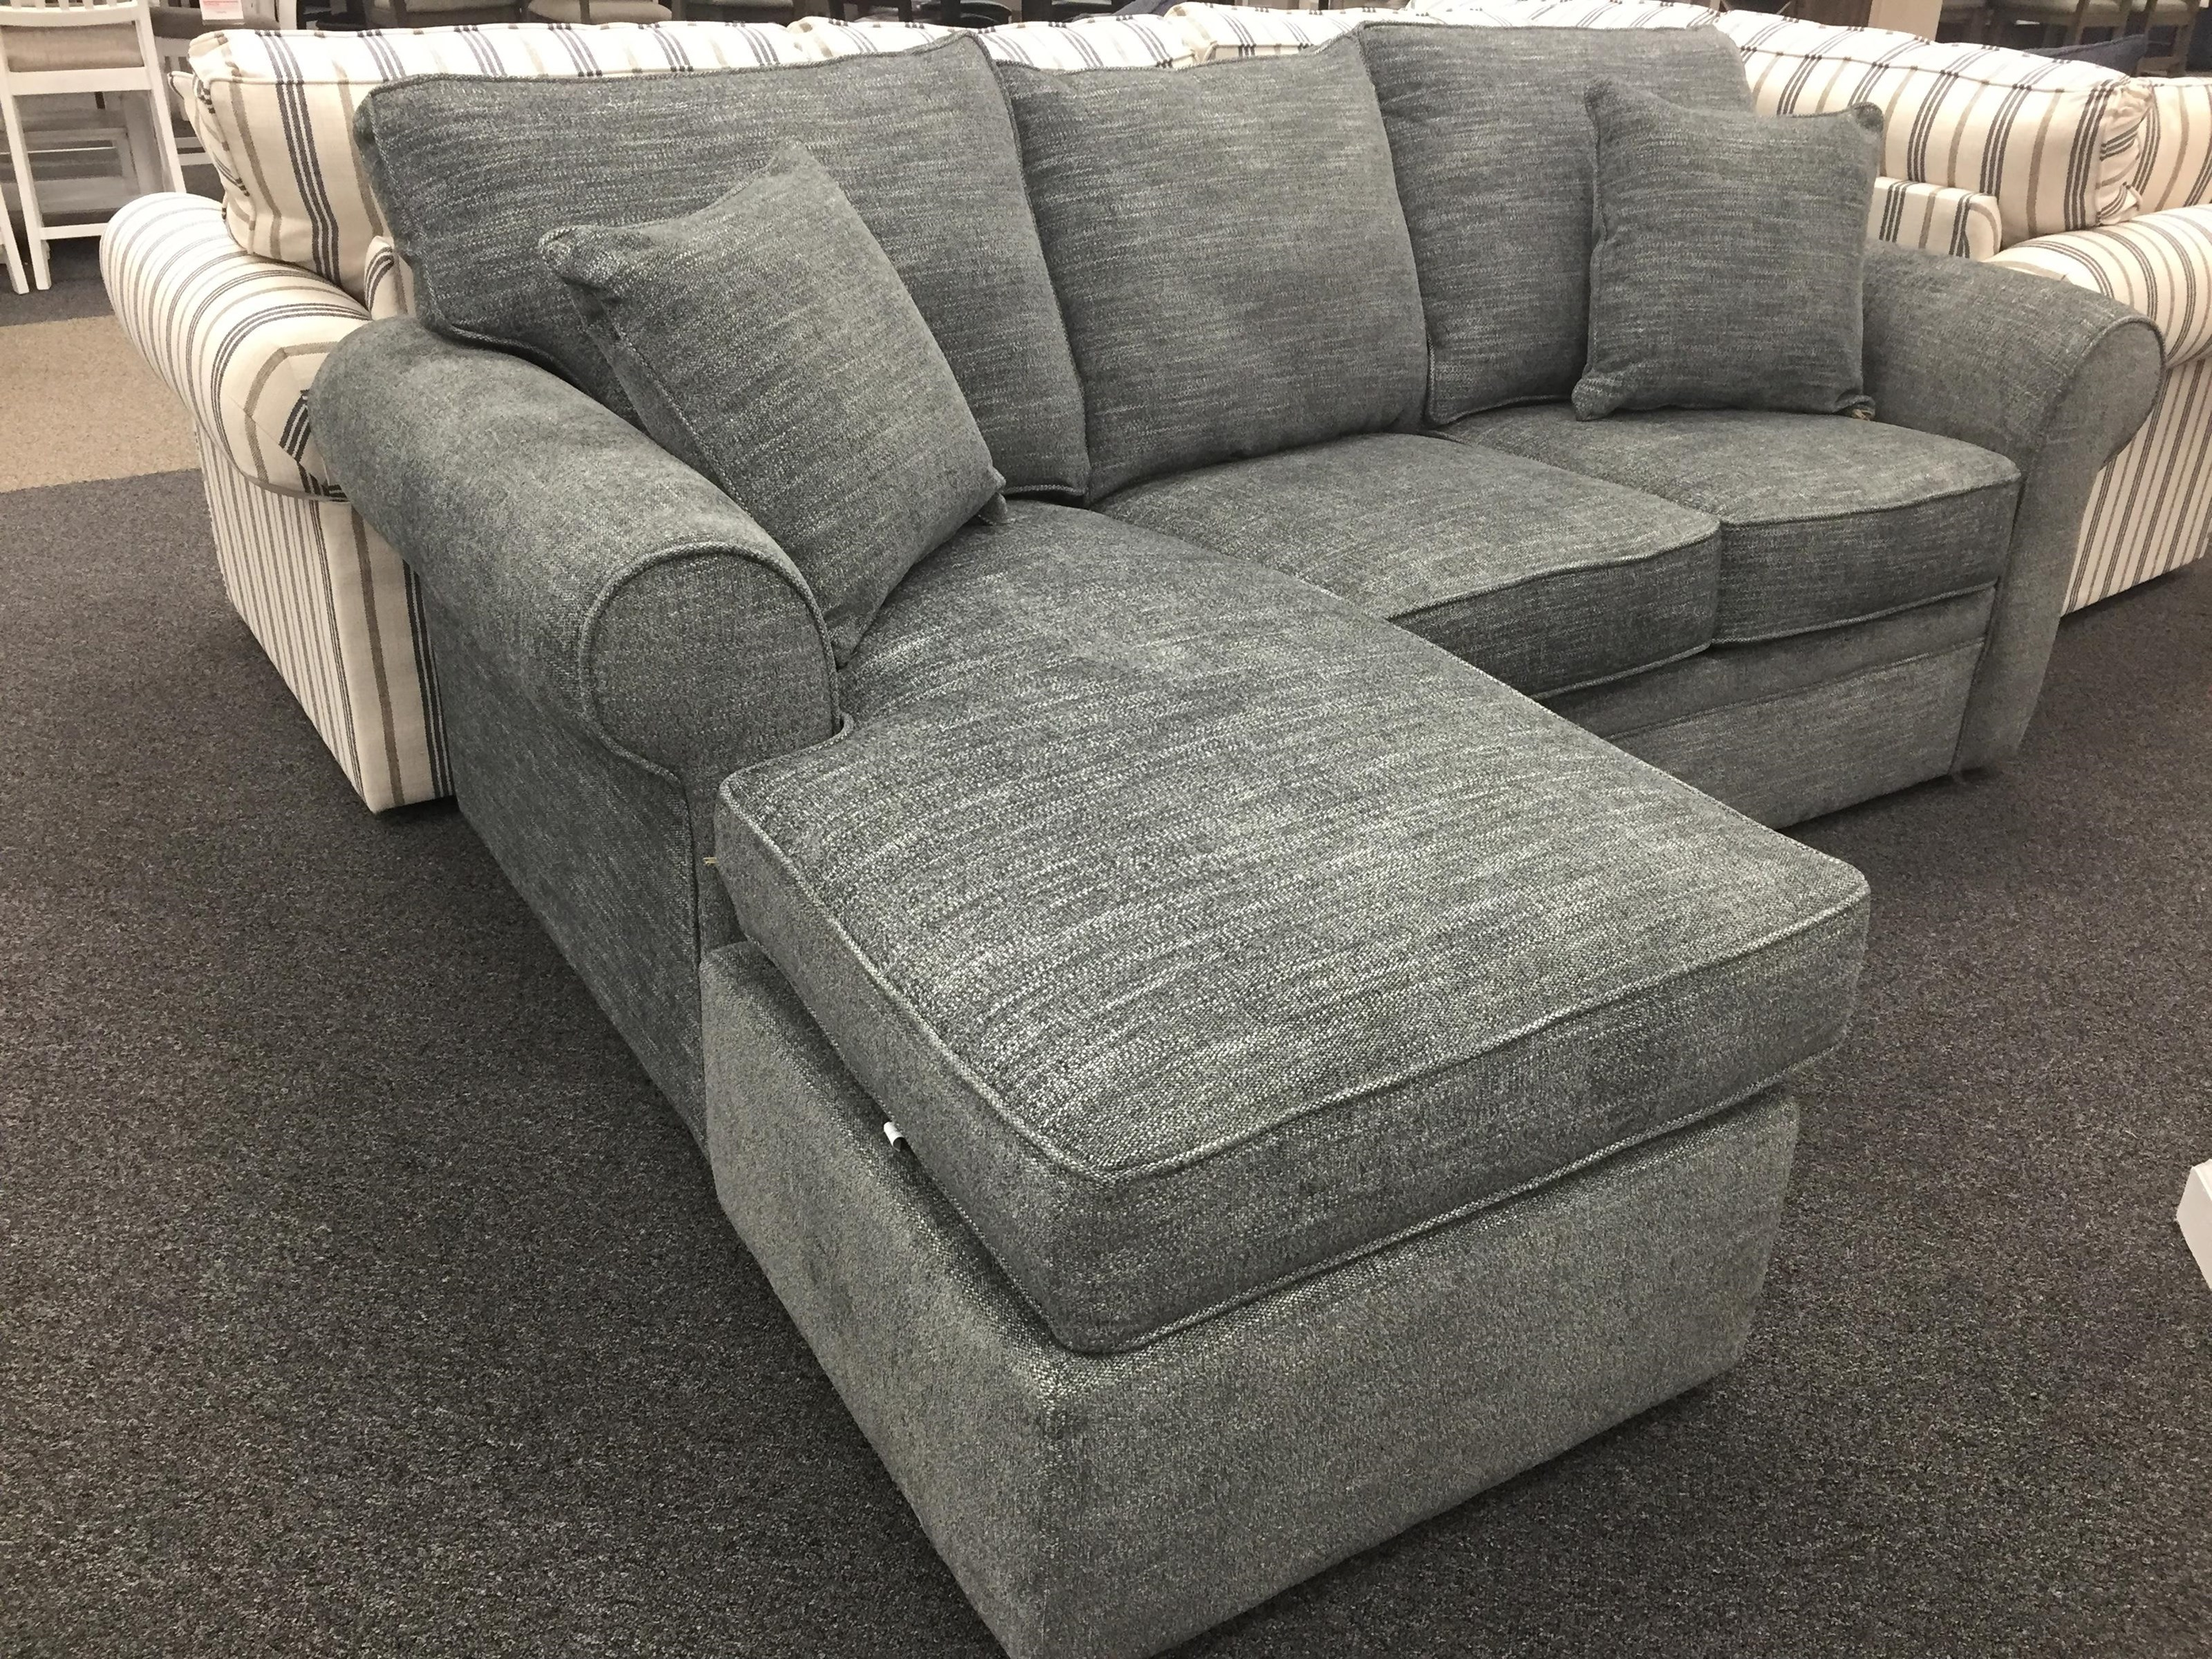 56 Queen Sleeper Chaise by Overnight Sofa at Furniture Fair - North Carolina